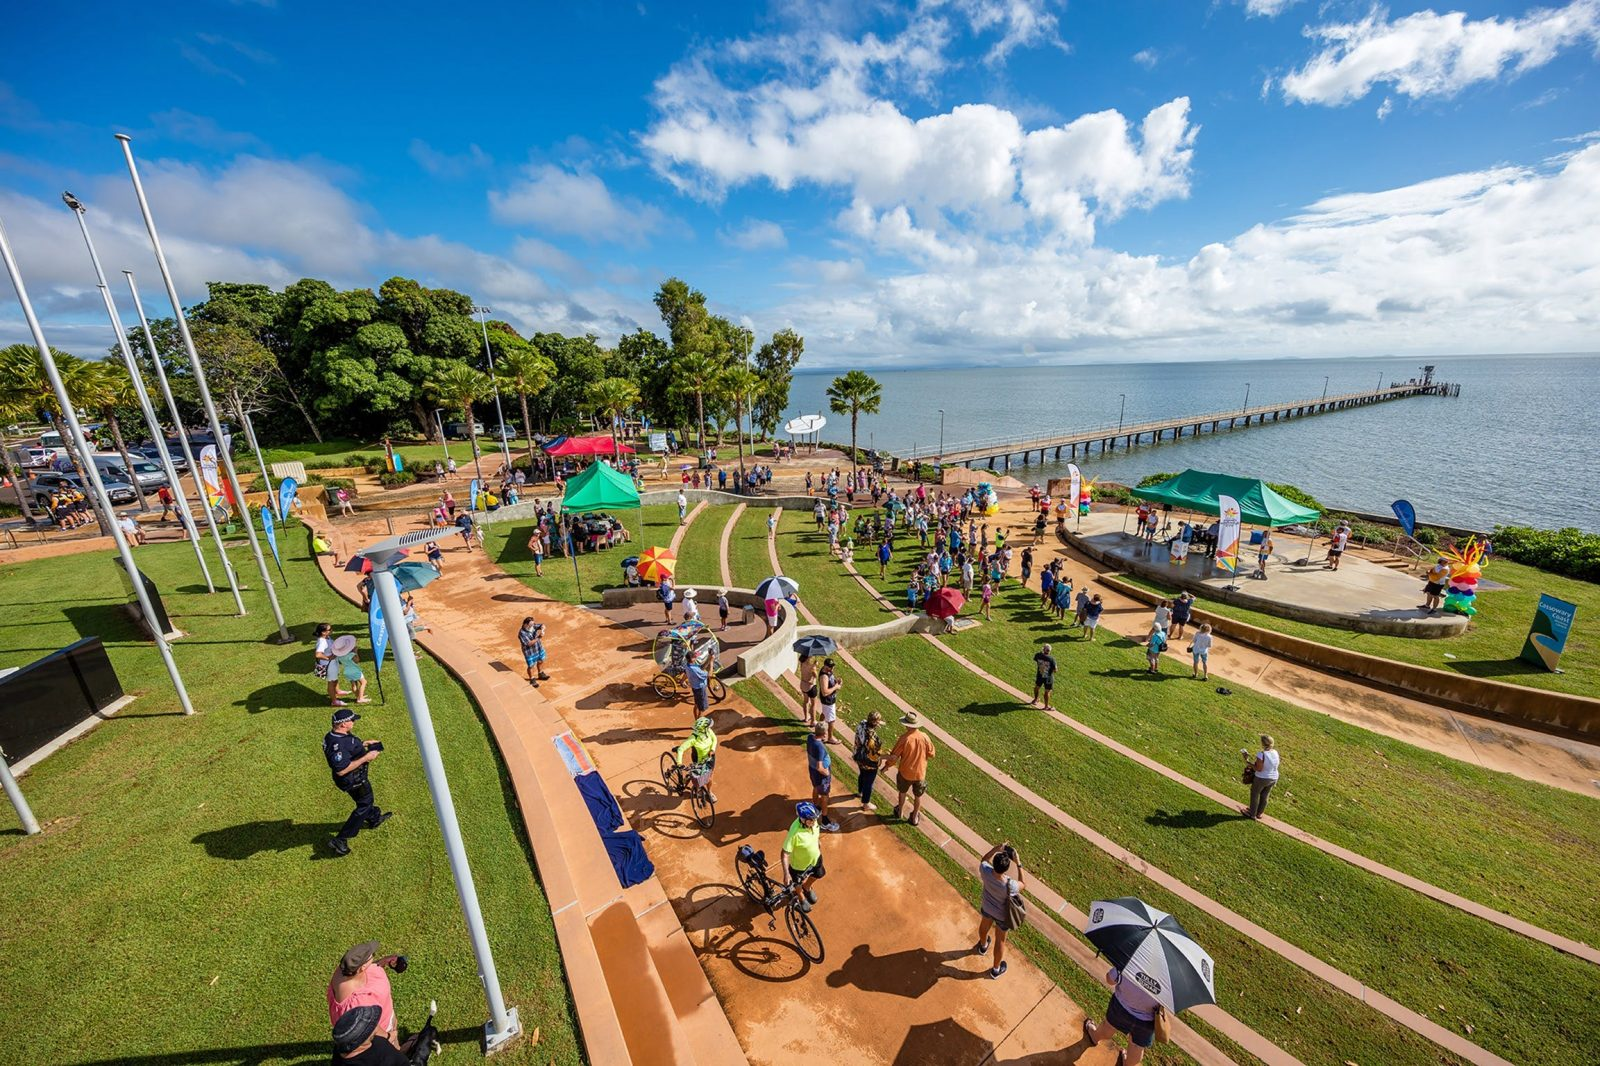 A festival celebrating Cardwell on the foreshore